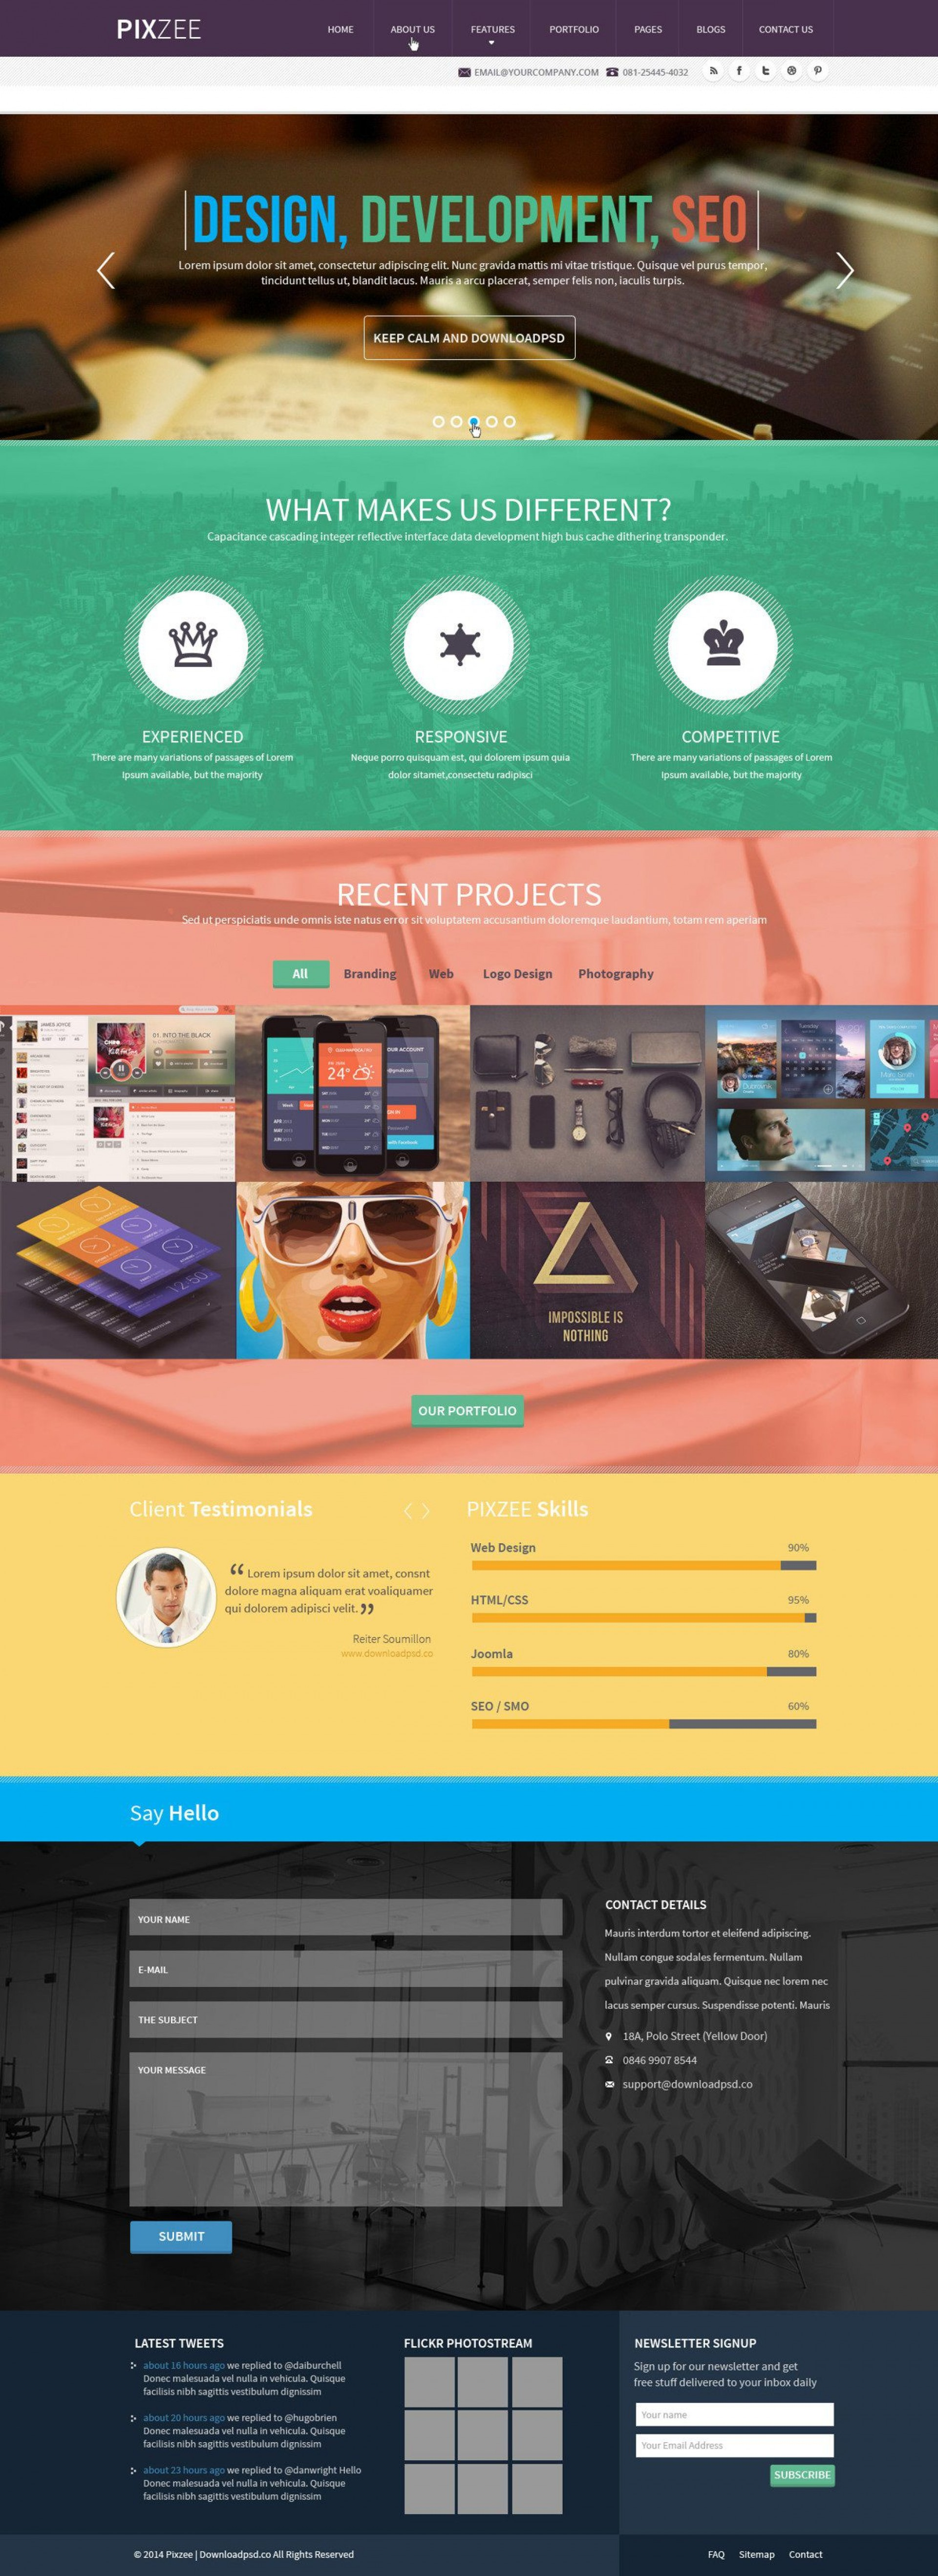 009 Magnificent One Page Website Template Psd Free Download Highest Clarity 1920